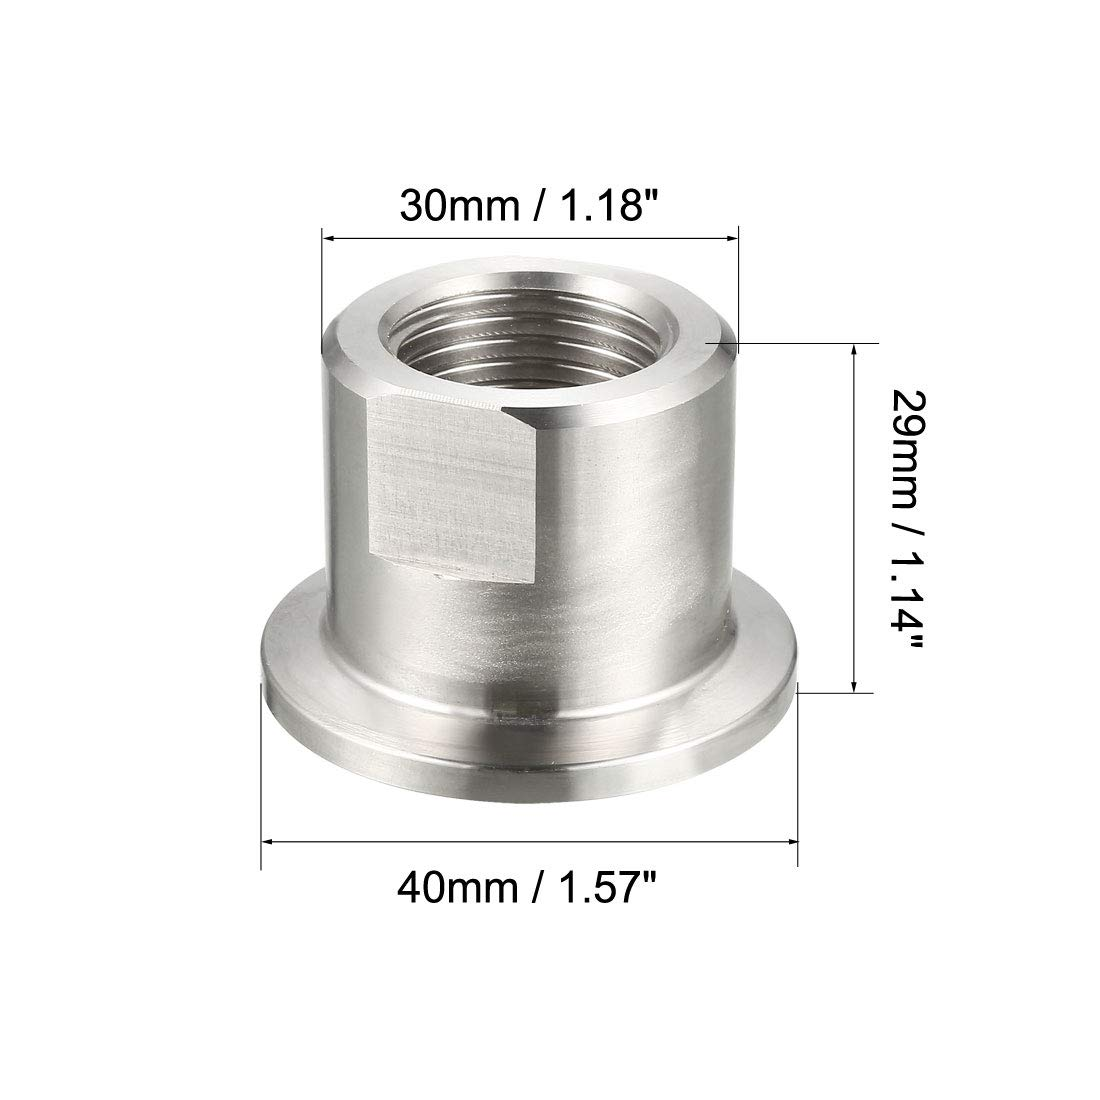 uxcell Sanitary Pipe Fitting KF25 Female Threaded 1//2 PT to Tri Clamp OD 40mm Ferrule 2 Pcs